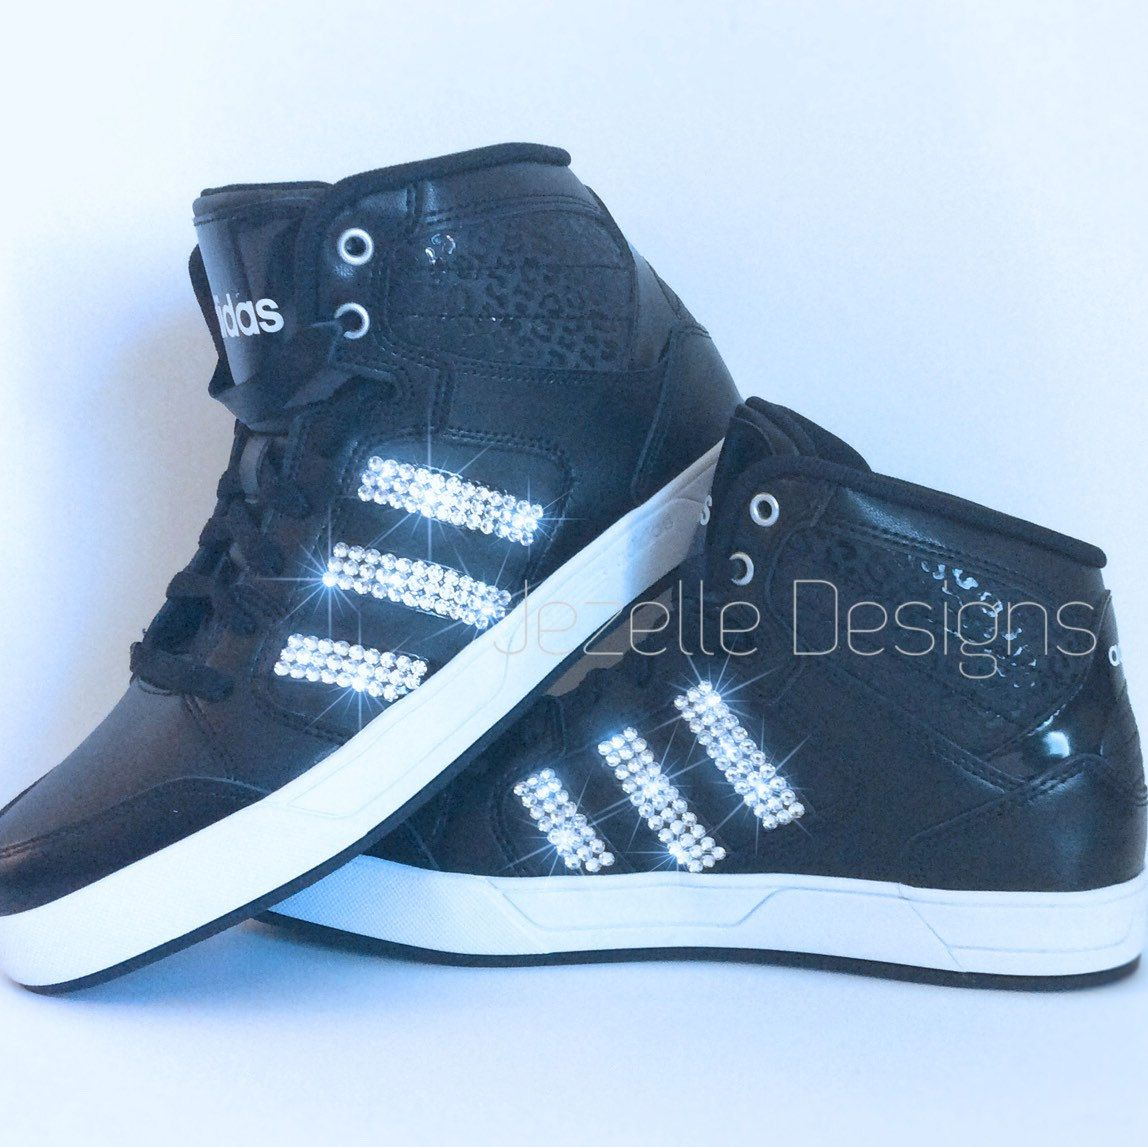 ... new arrivals 3a17d 34b51 Swarovski Crystal Adidas Shoes - Blinged Out  High Tops with SWAROVSKI® ... 6974cb1ce3